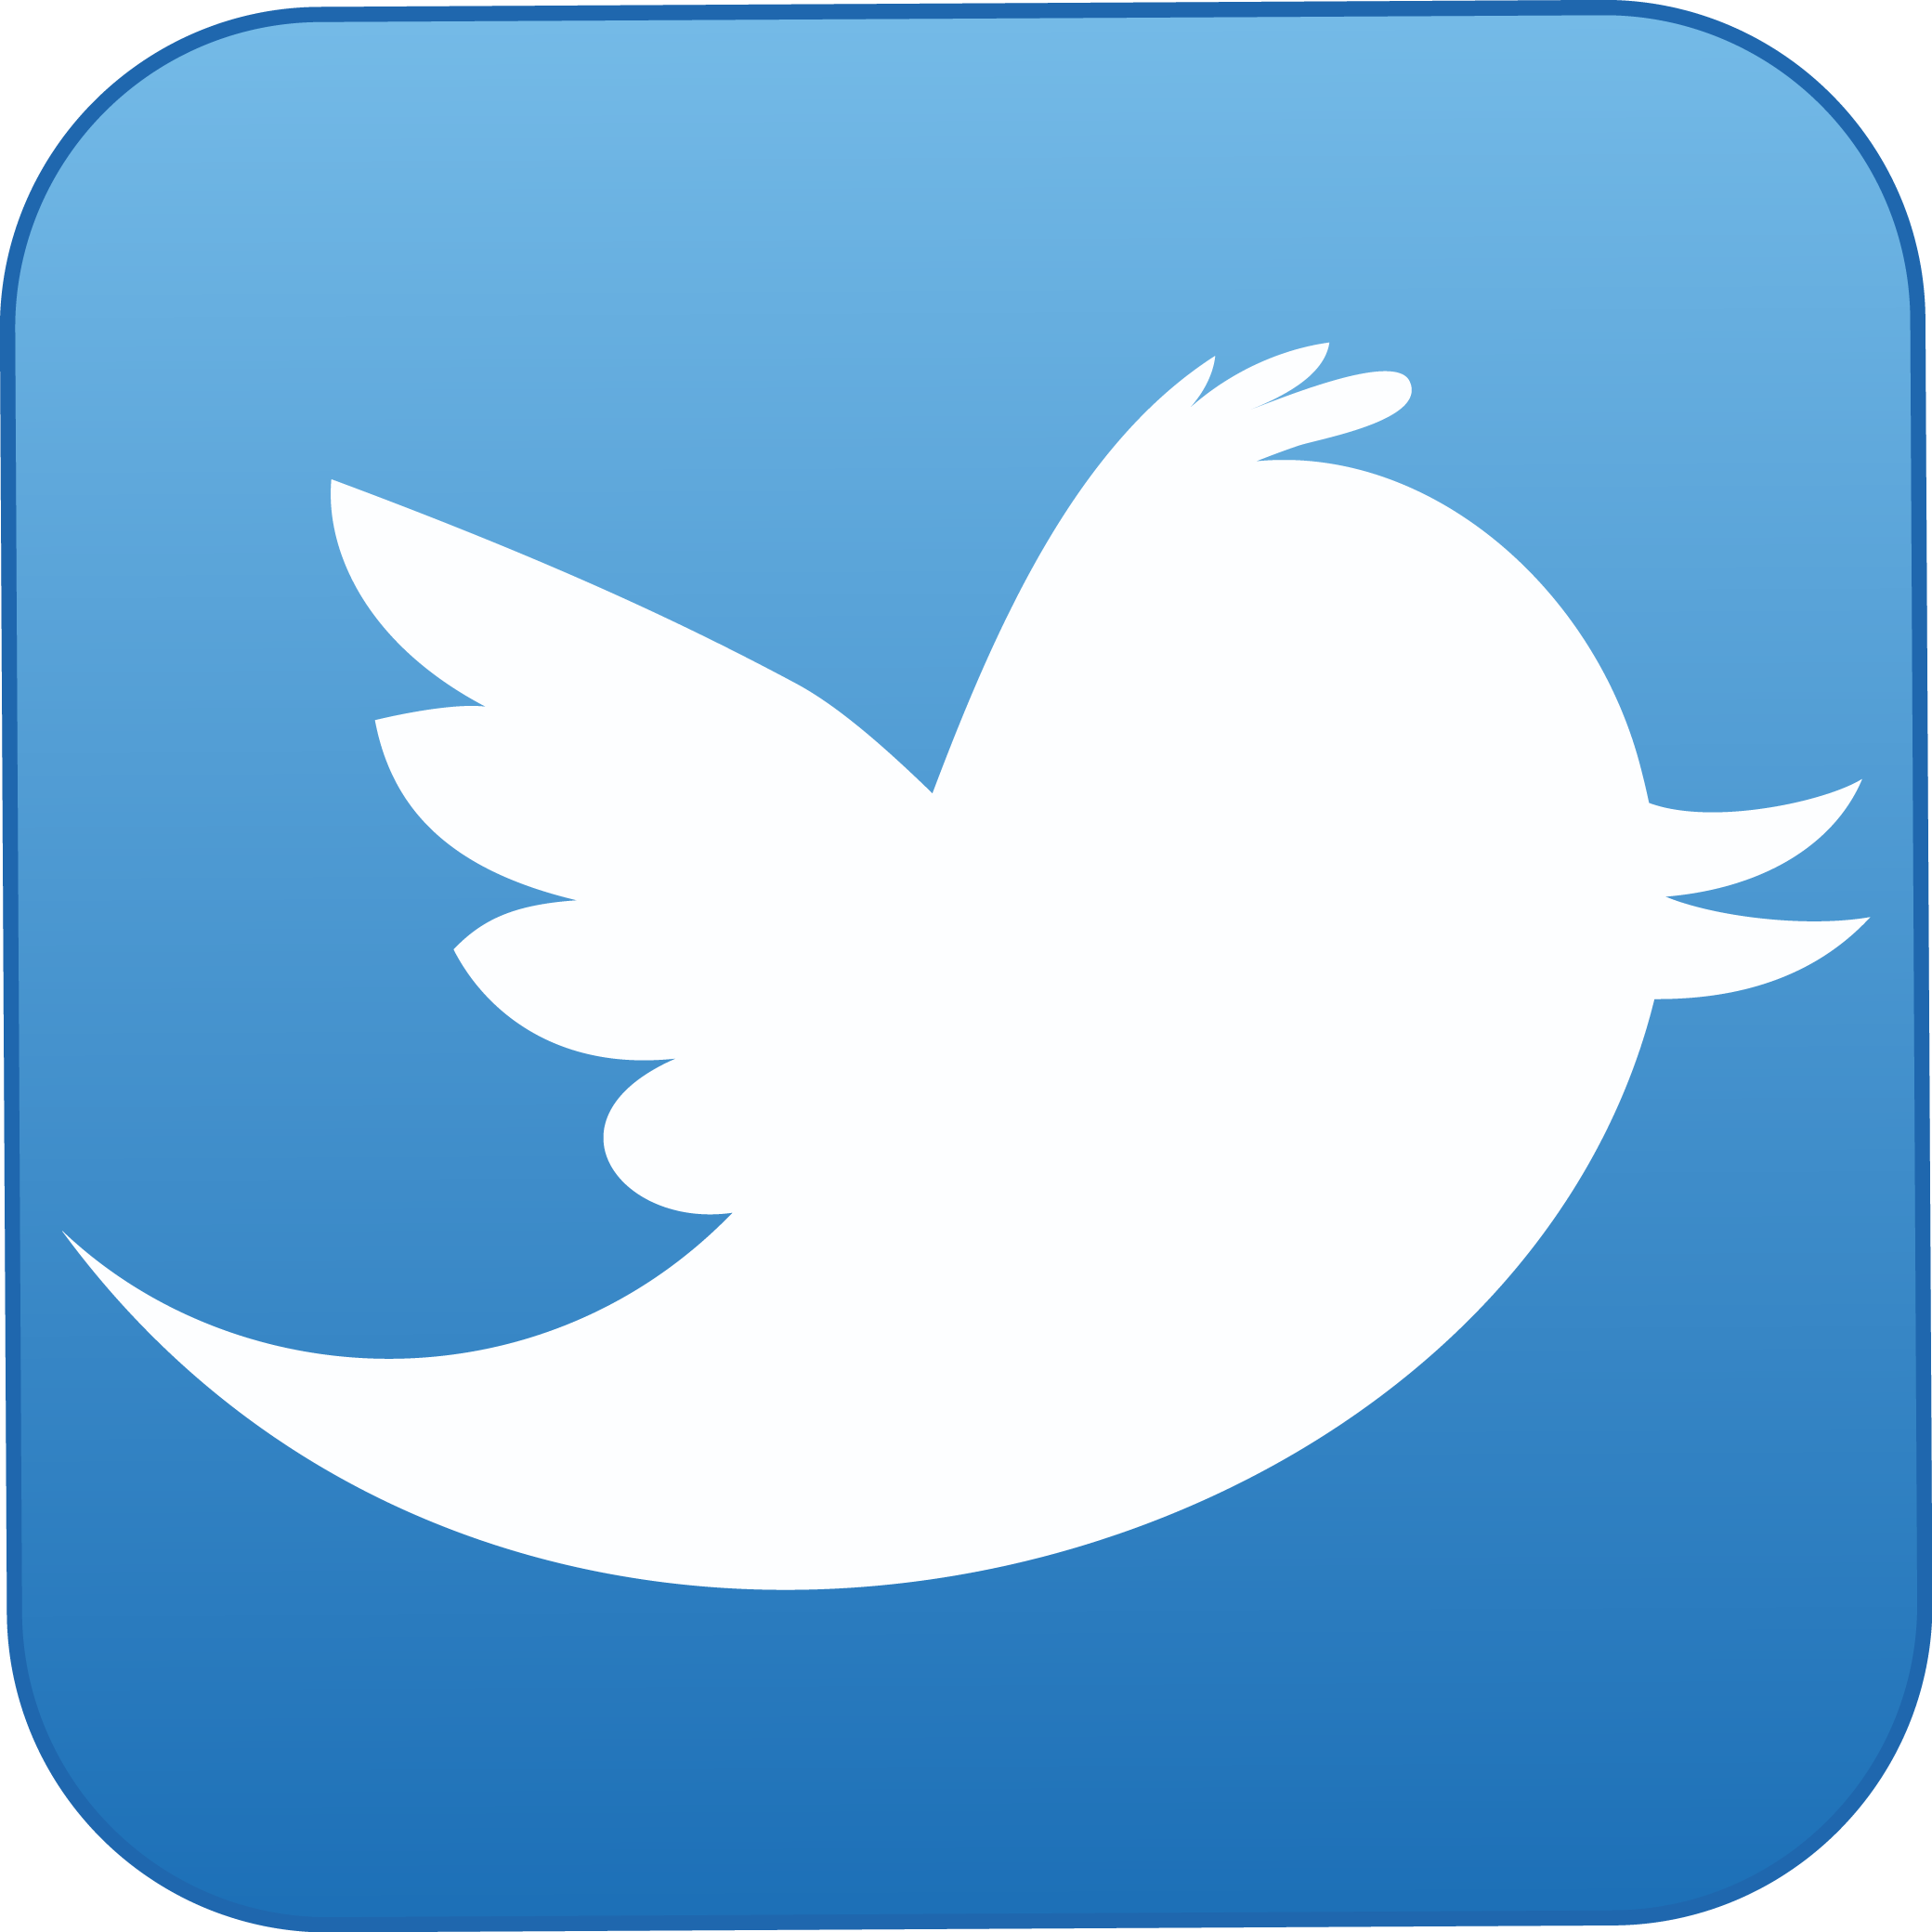 twitter-icon-square